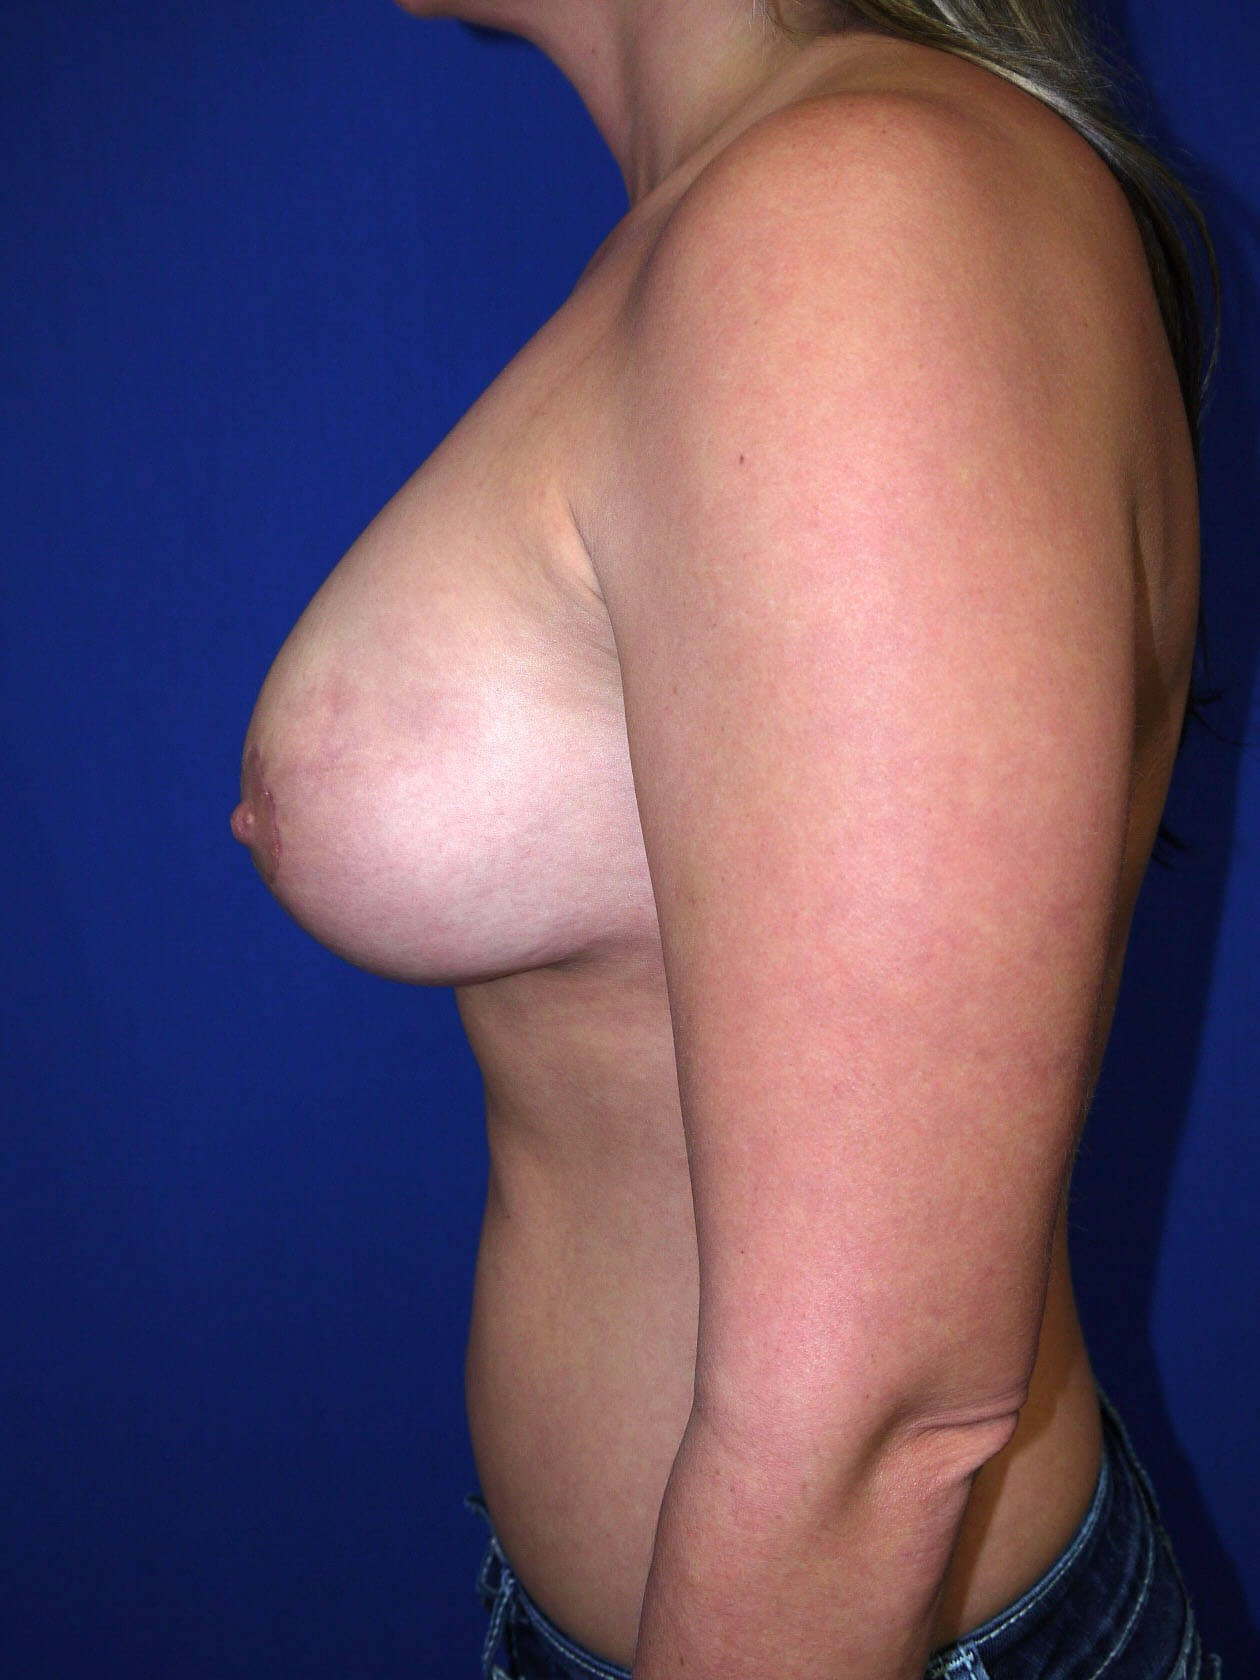 Fat Transfer to Breast After - Left Side